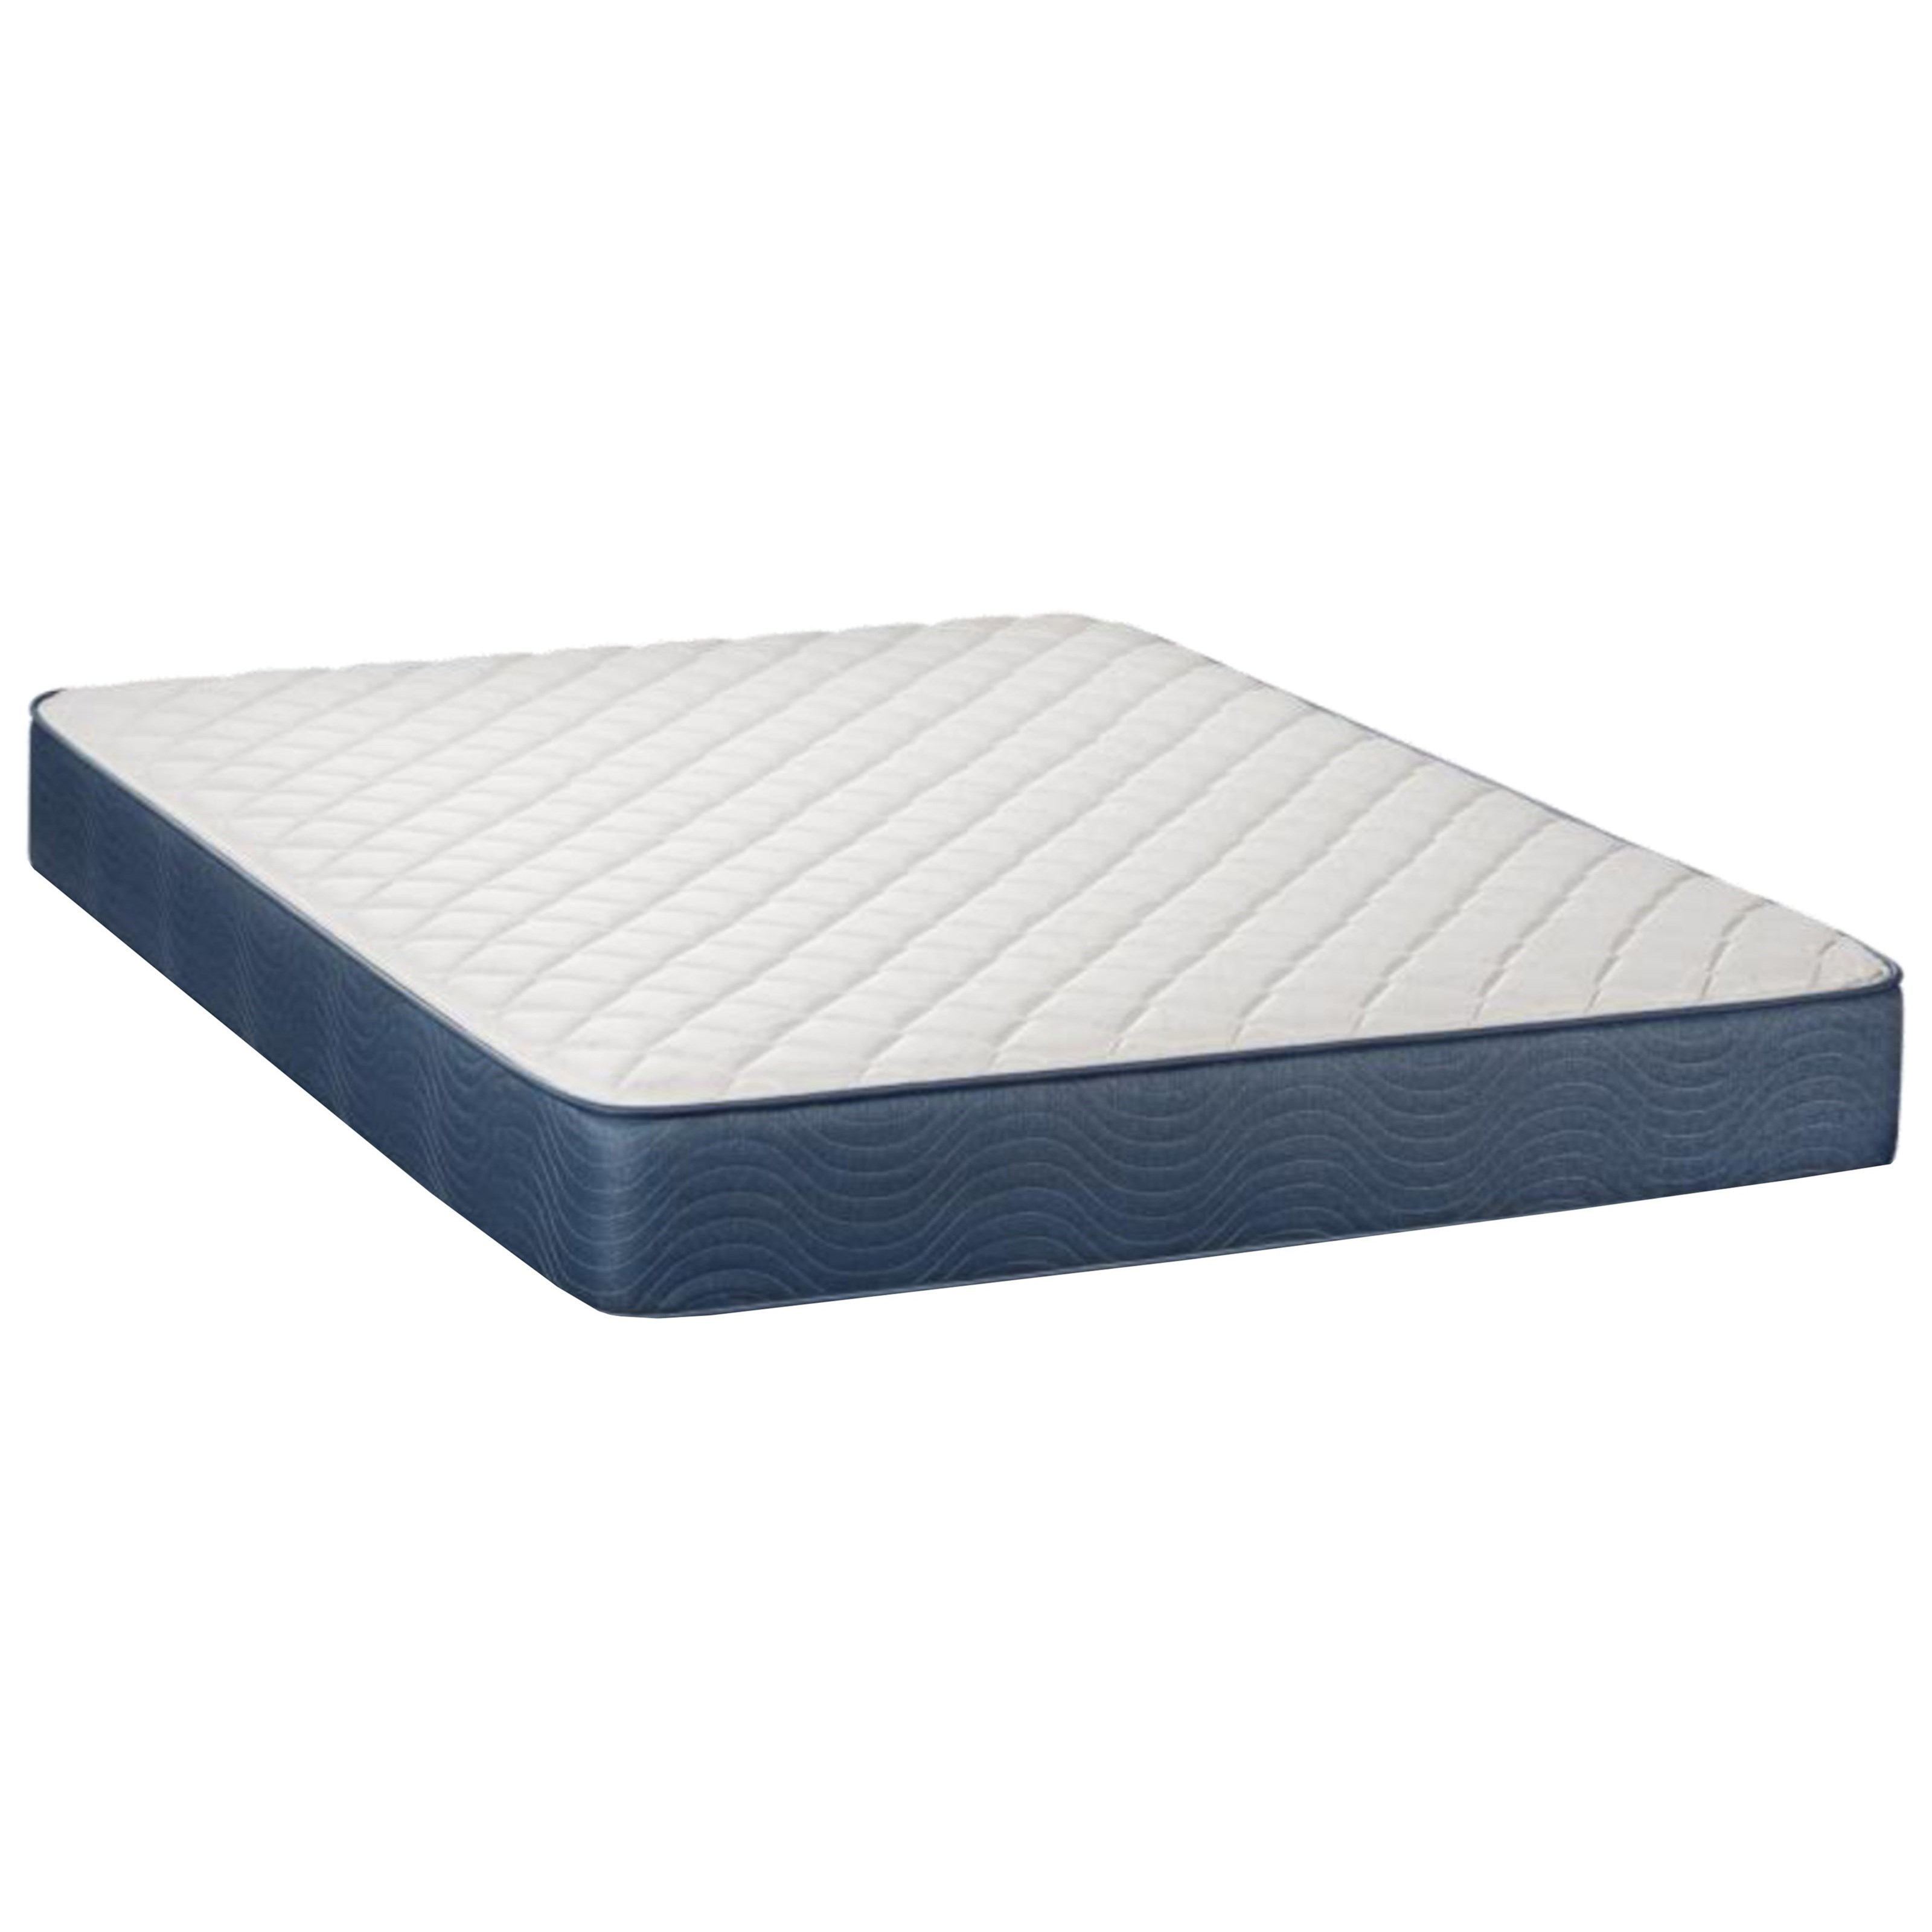 Wellington Firm Queen Firm 2-Sided Mattress by Restonic at Wilcox Furniture